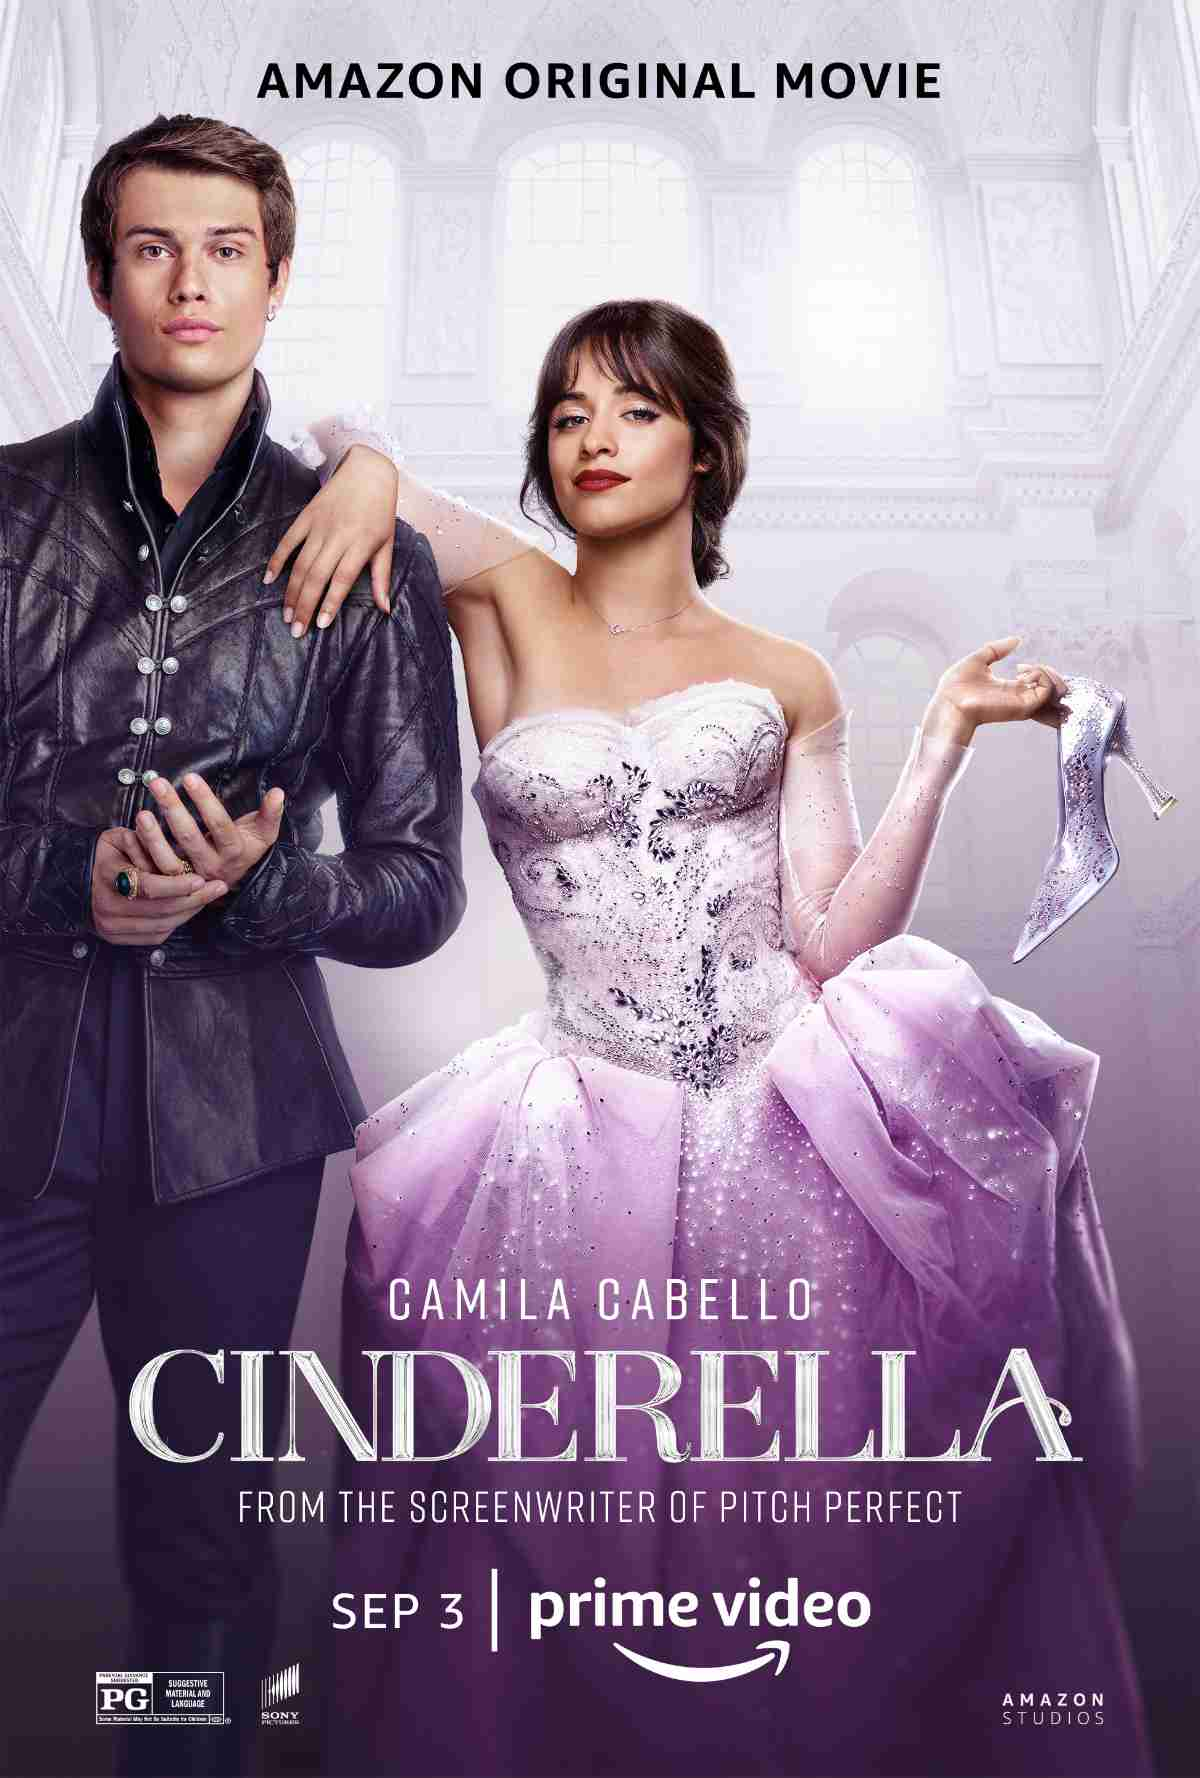 Cinderella Trailer and Poster